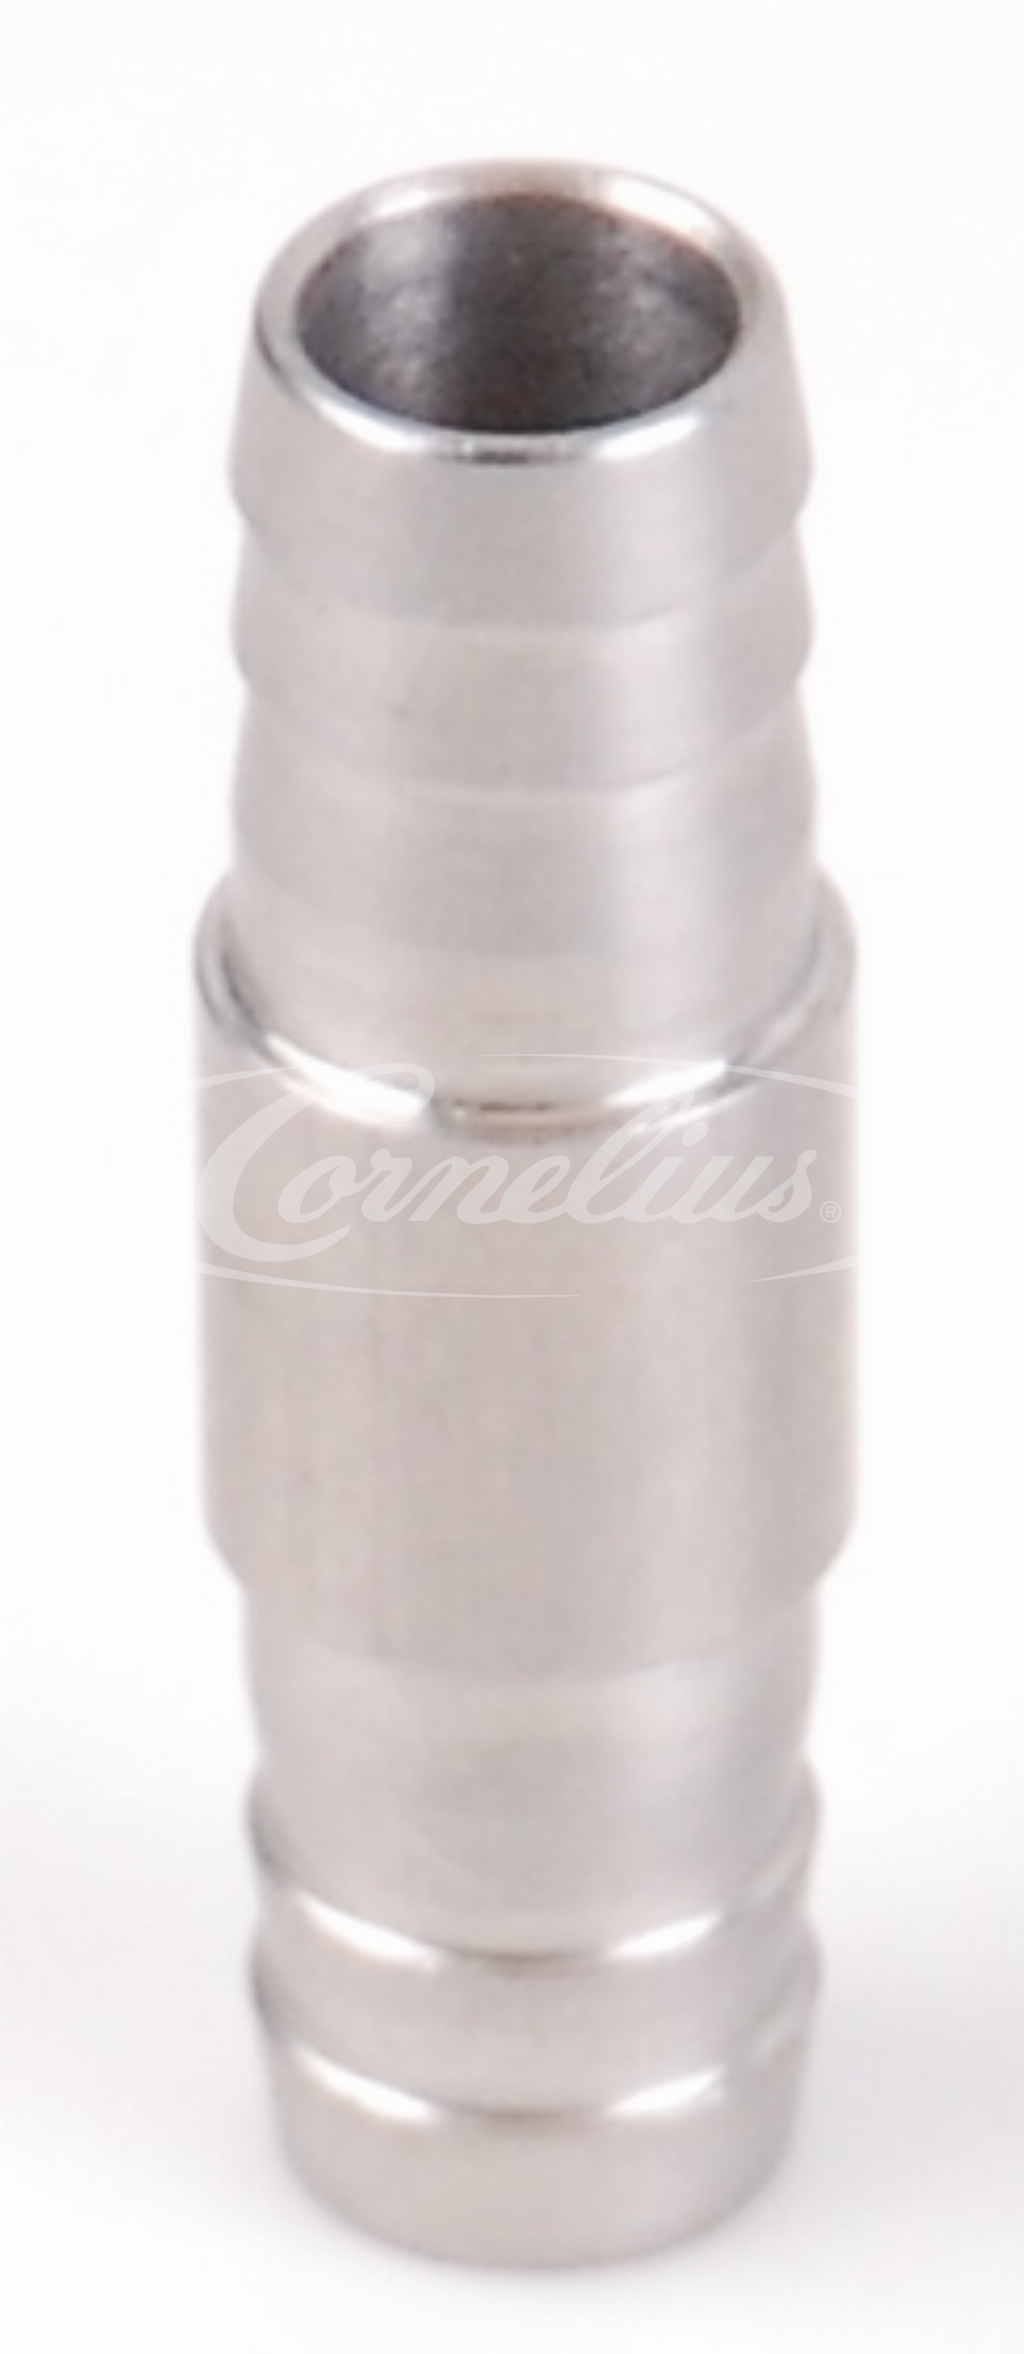 Barb fitting, SS, 10mm